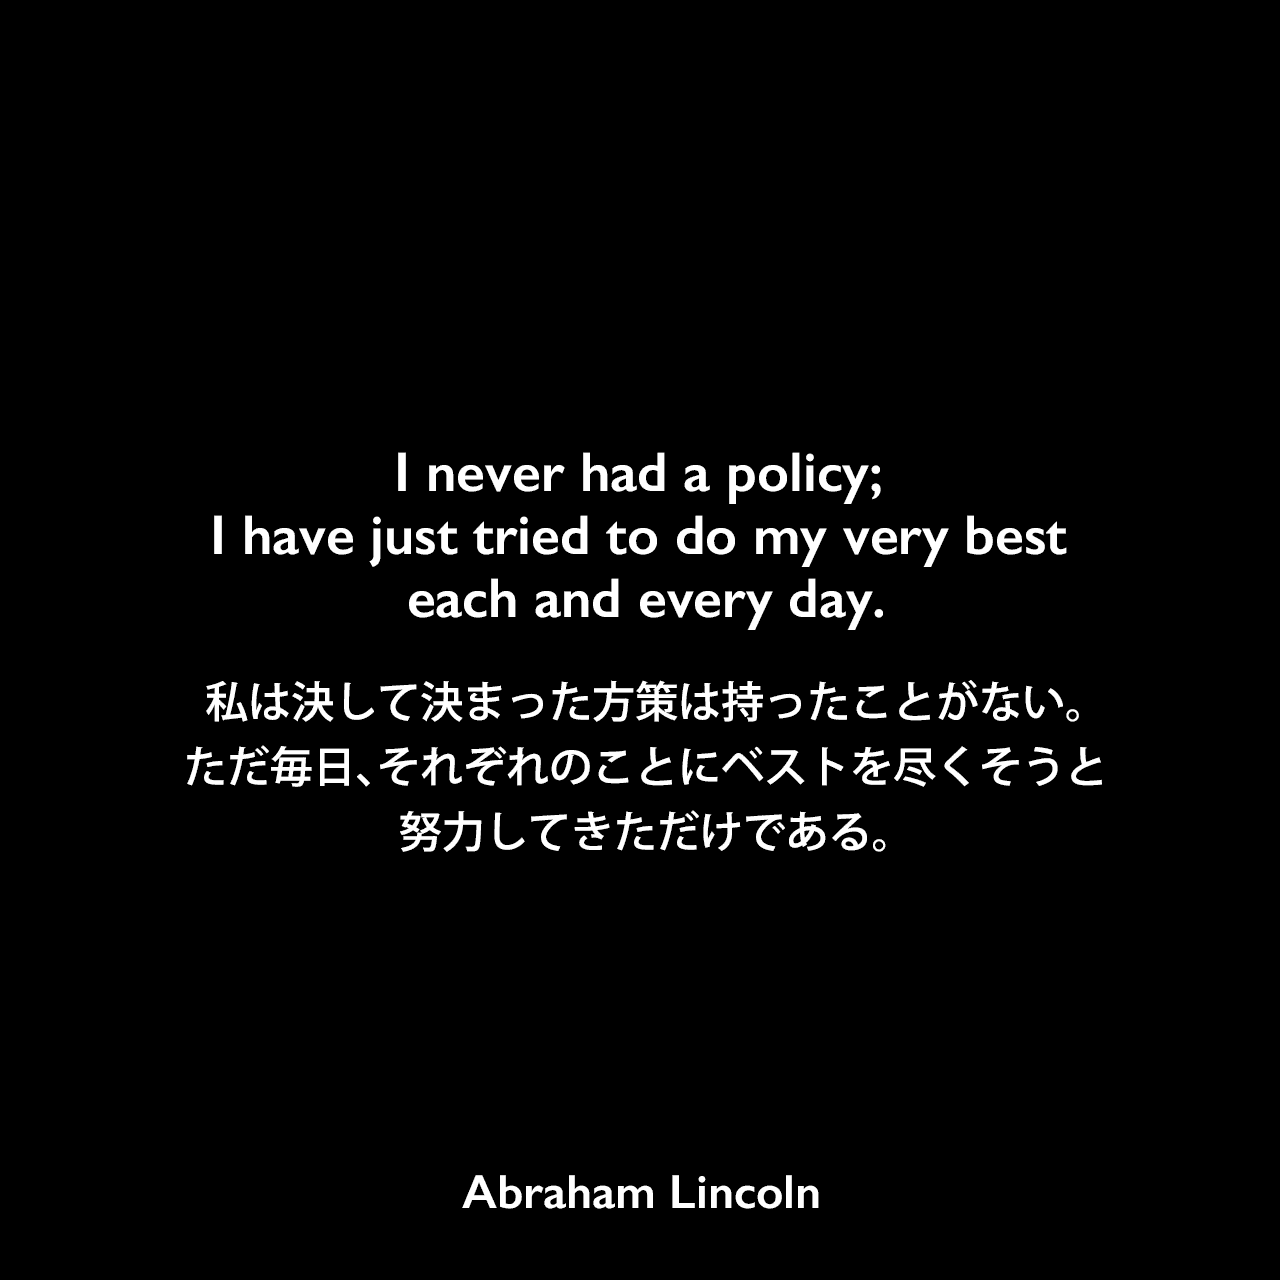 I never had a policy; I have just tried to do my very best each and every day.私は決して決まった方策は持ったことがない。ただ毎日、それぞれのことにベストを尽くそうと努力してきただけである。